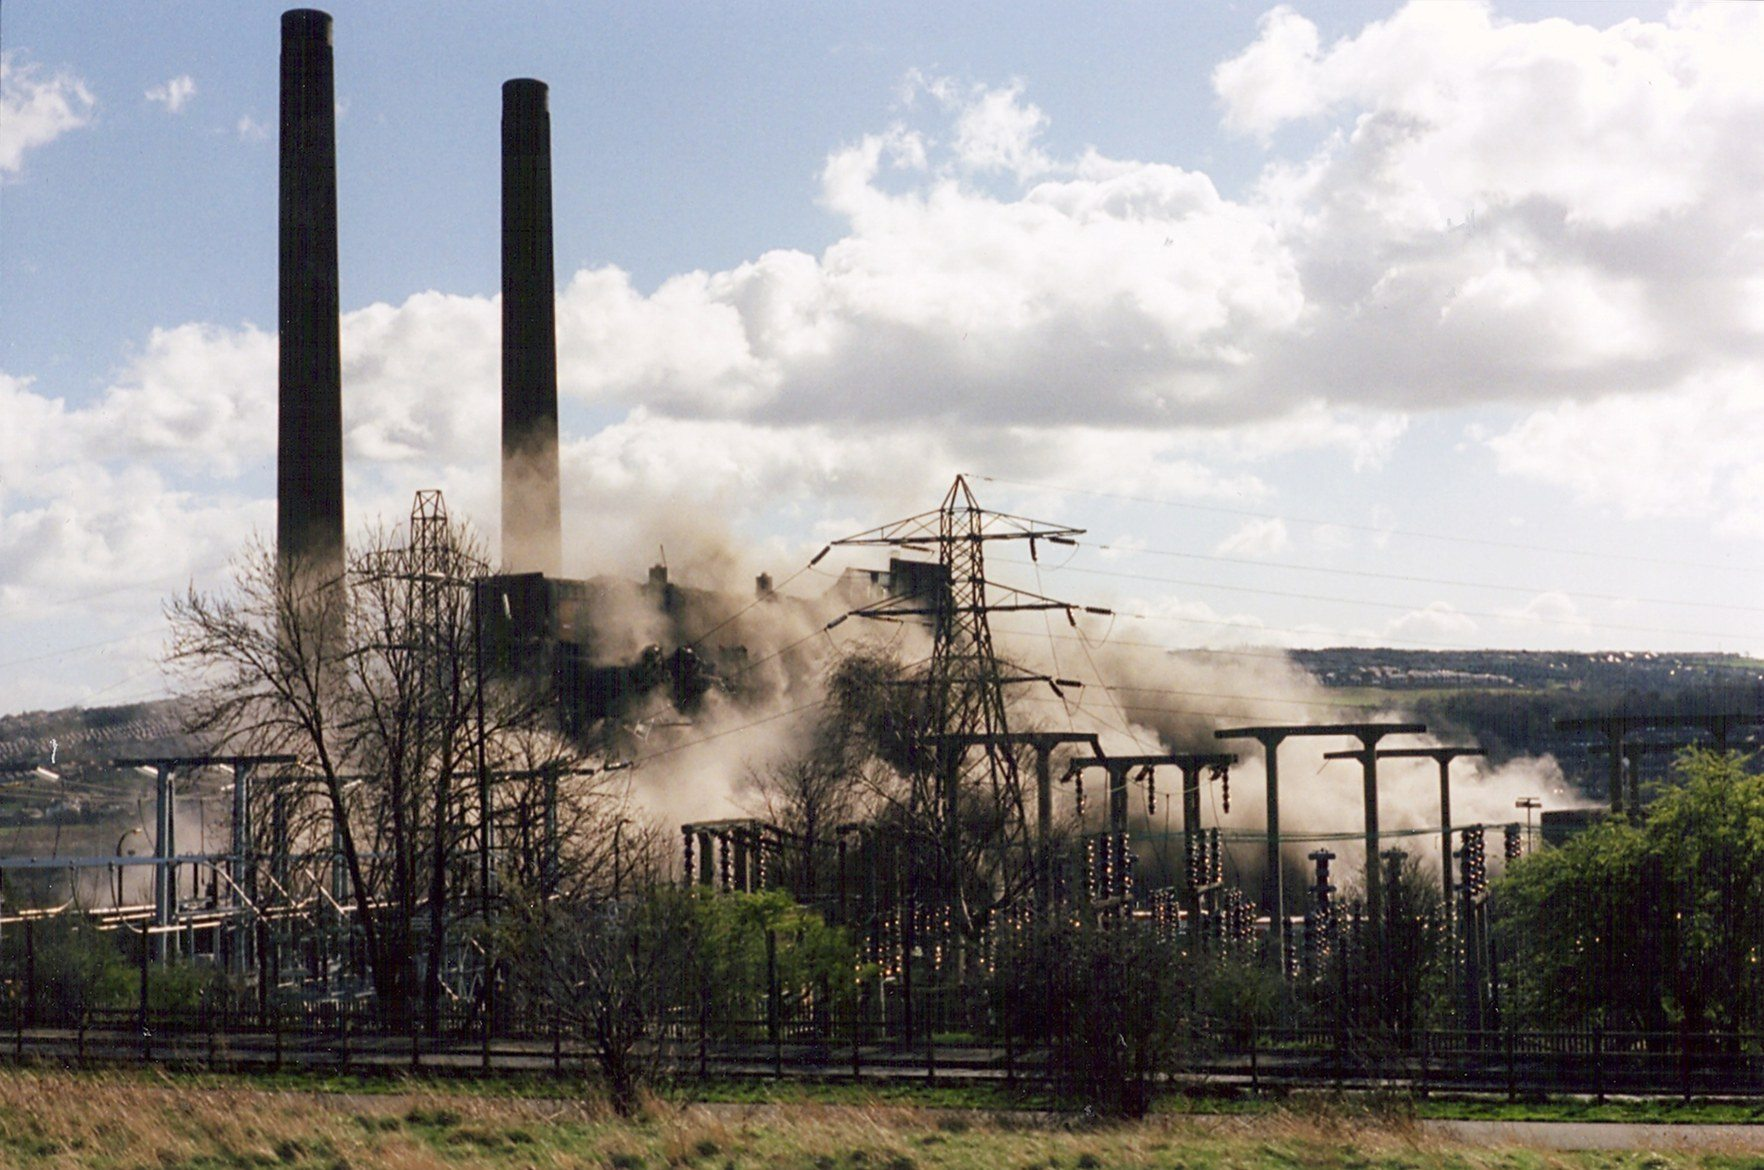 Energy Companies Call For Strengthening Of Carbon Tax